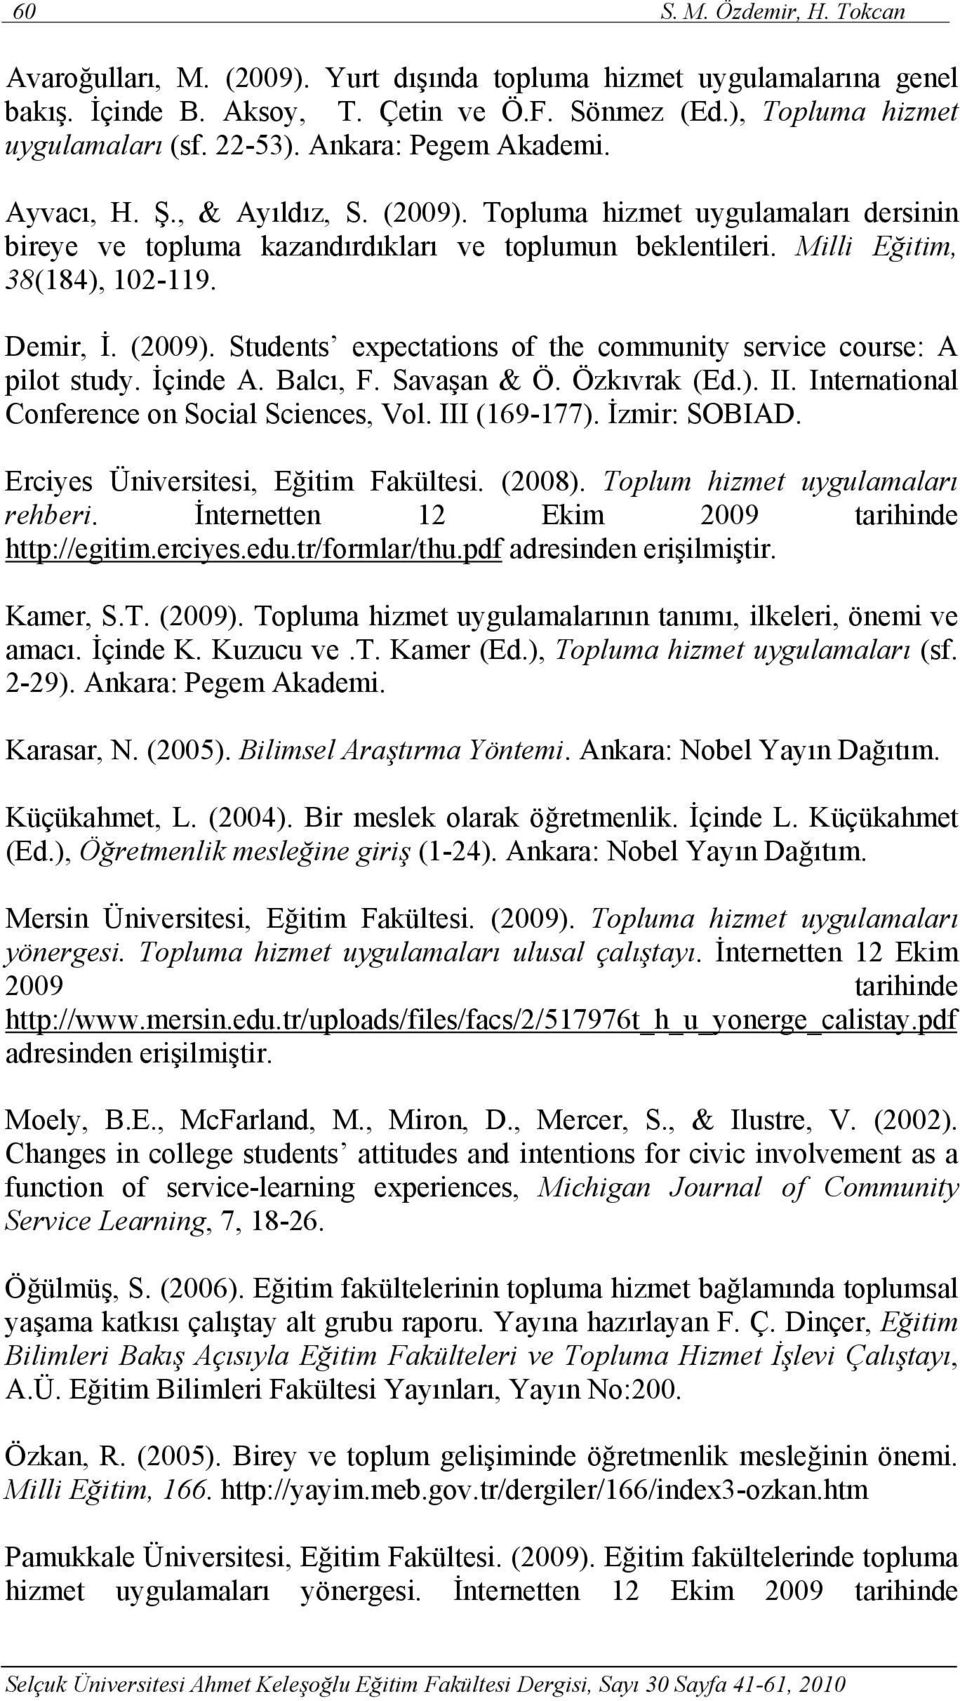 (2009). Students expectations of the community service course: A pilot study. İçinde A. Balcı, F. Savaşan & Ö. Özkıvrak (Ed.). II. International Conference on Social Sciences, Vol. III (169-177).